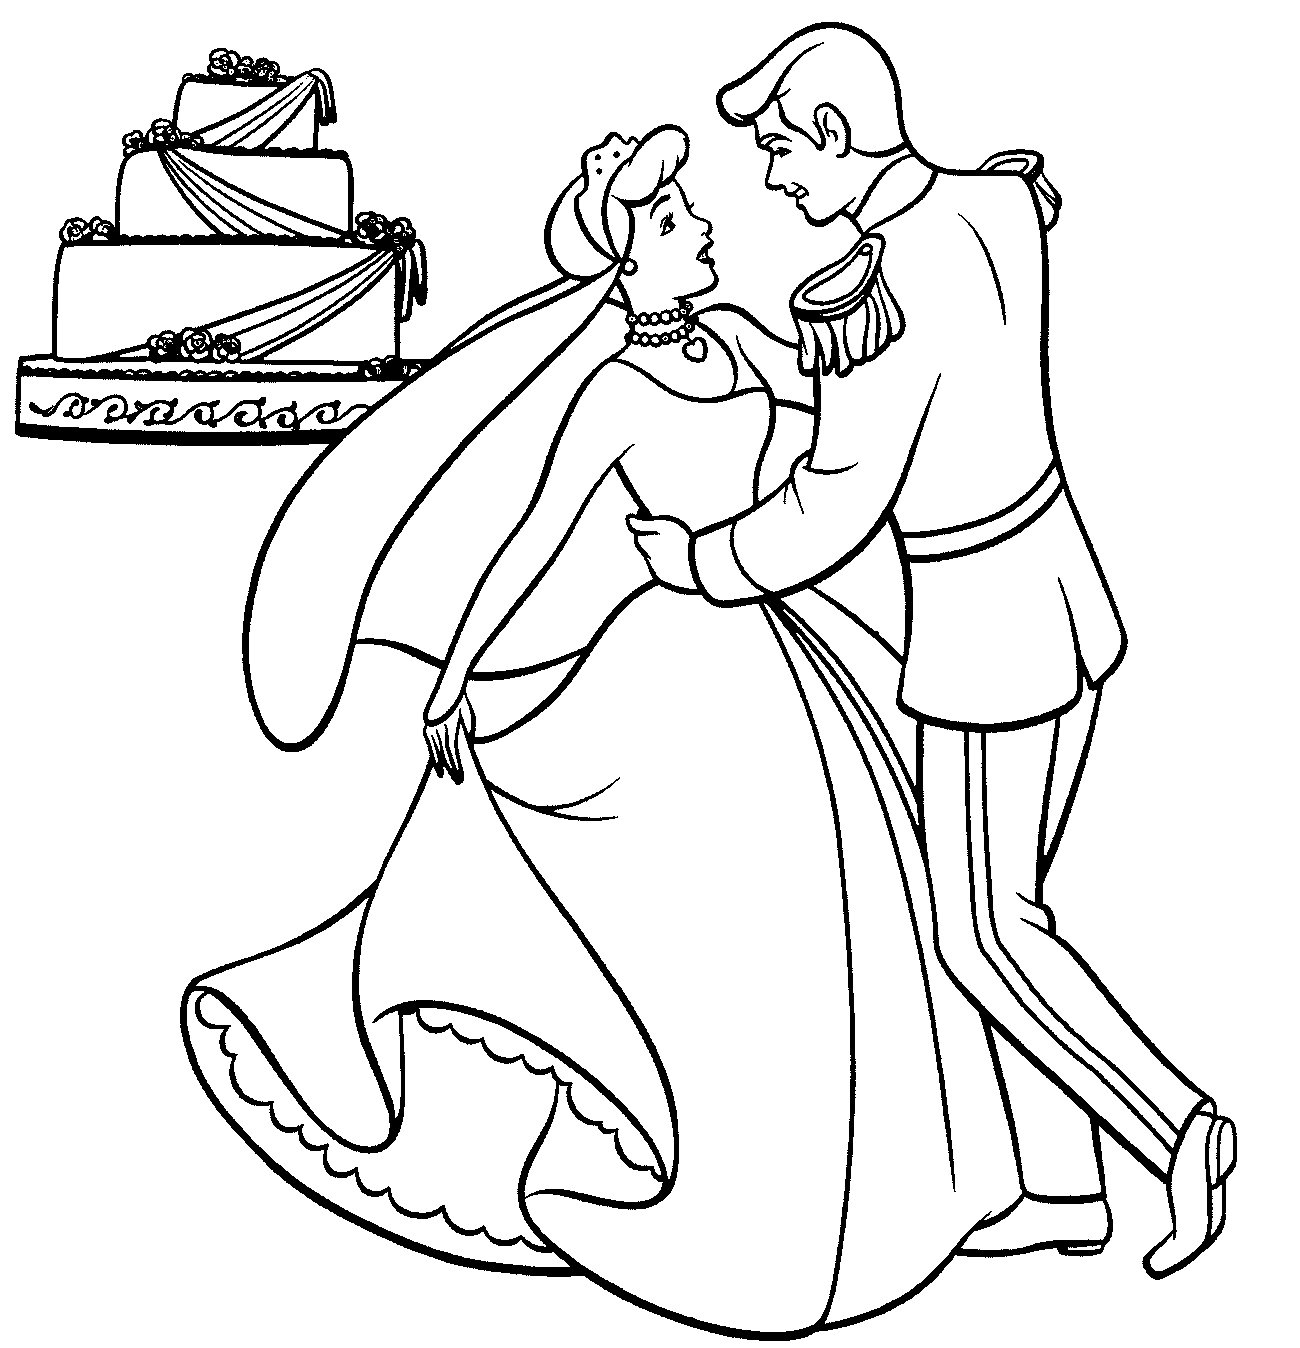 Free Cinderella Clipart Coloring Pages precious moments memory.